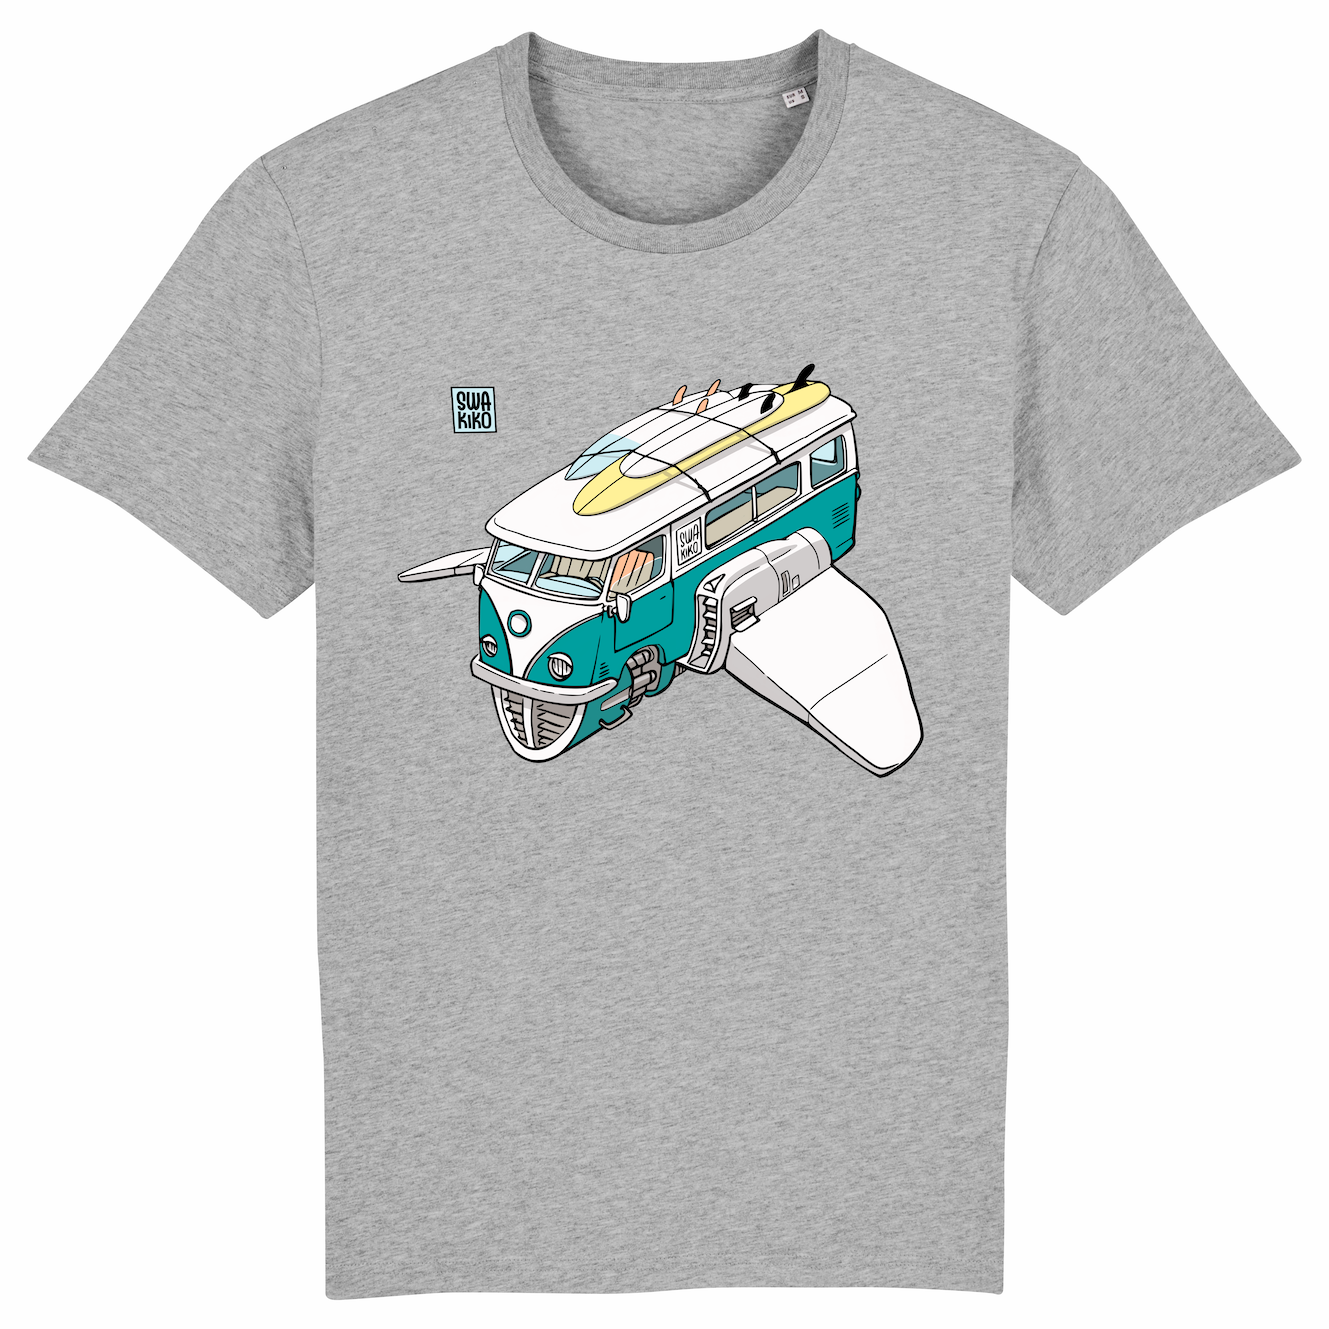 Surf t-shirt men grey, Volkswagon Surfship